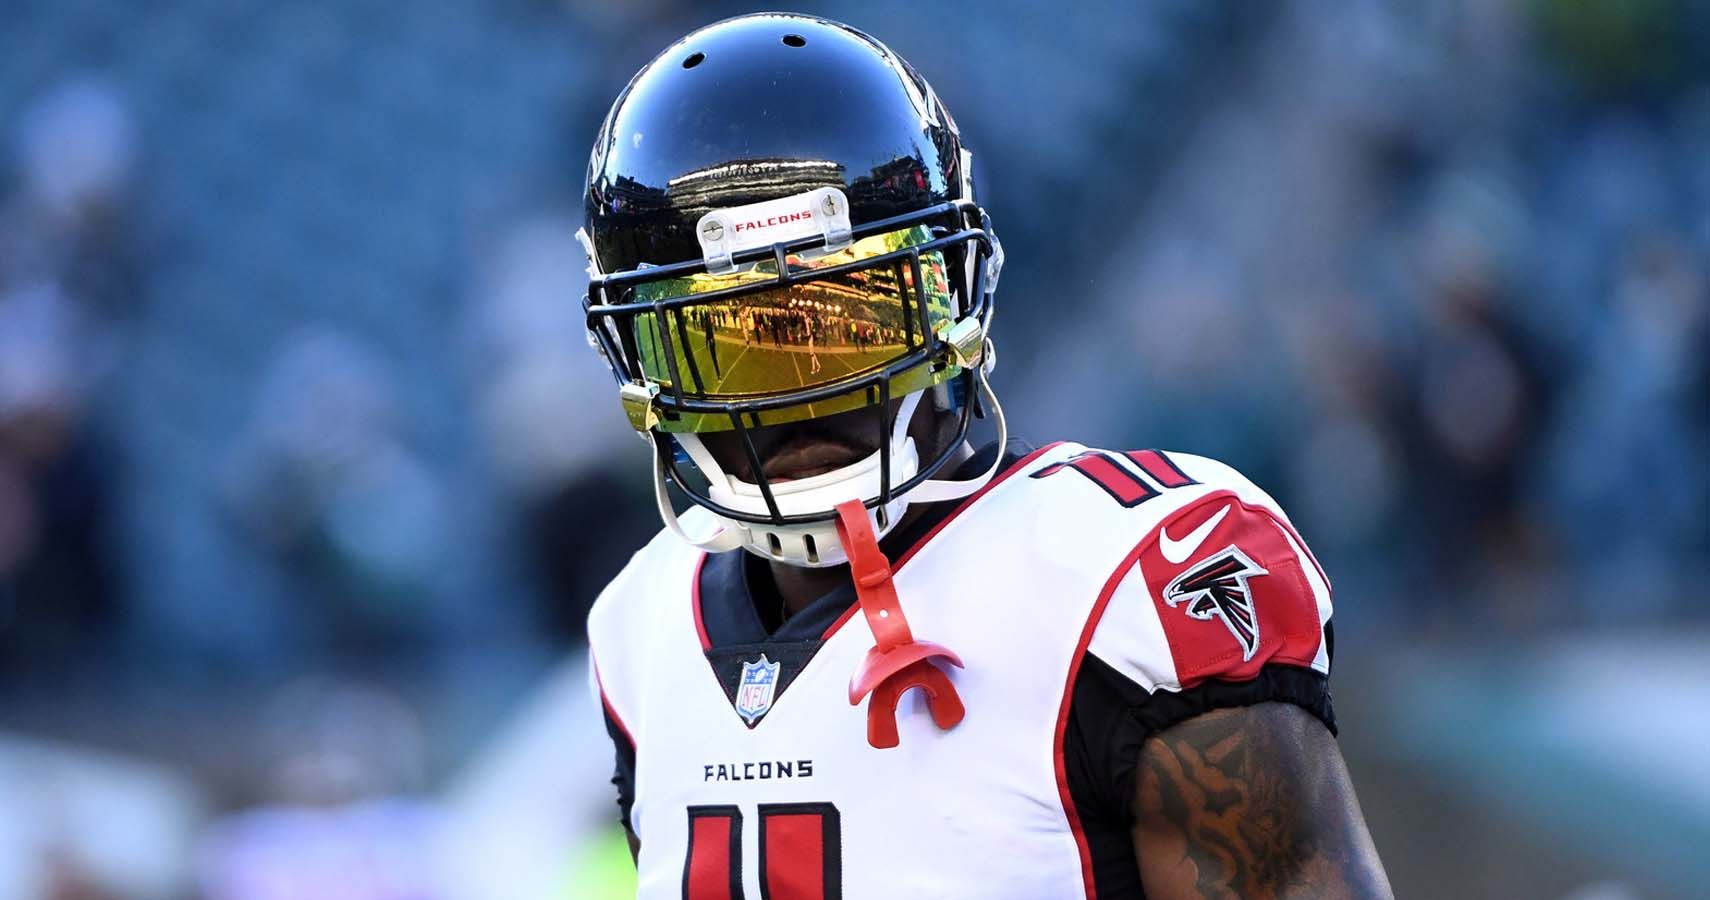 cf2d5d0d One Major Player Upgrade Every NFL Team Needs To Make